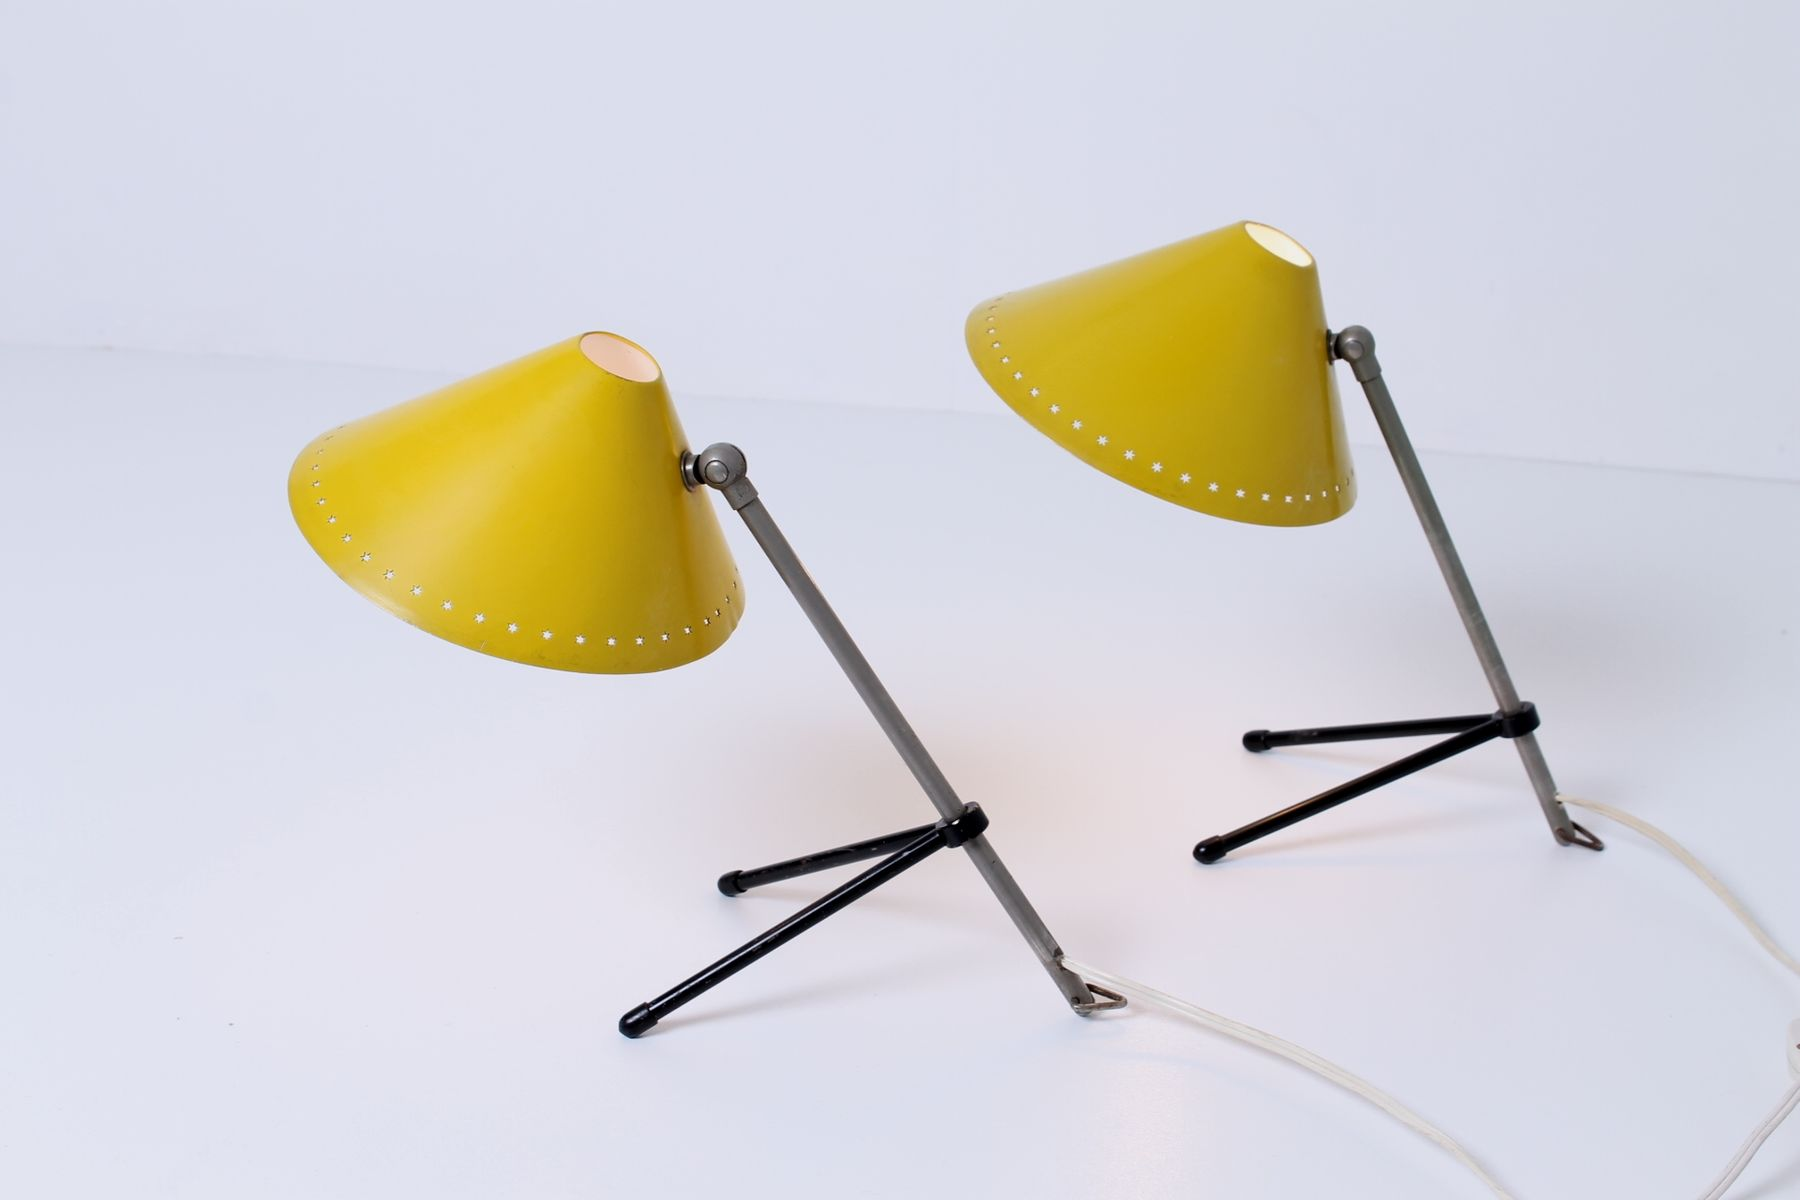 lampe de bureau pinocchio jaune par h busquet pour hala zeist 1950s en vente sur pamono. Black Bedroom Furniture Sets. Home Design Ideas